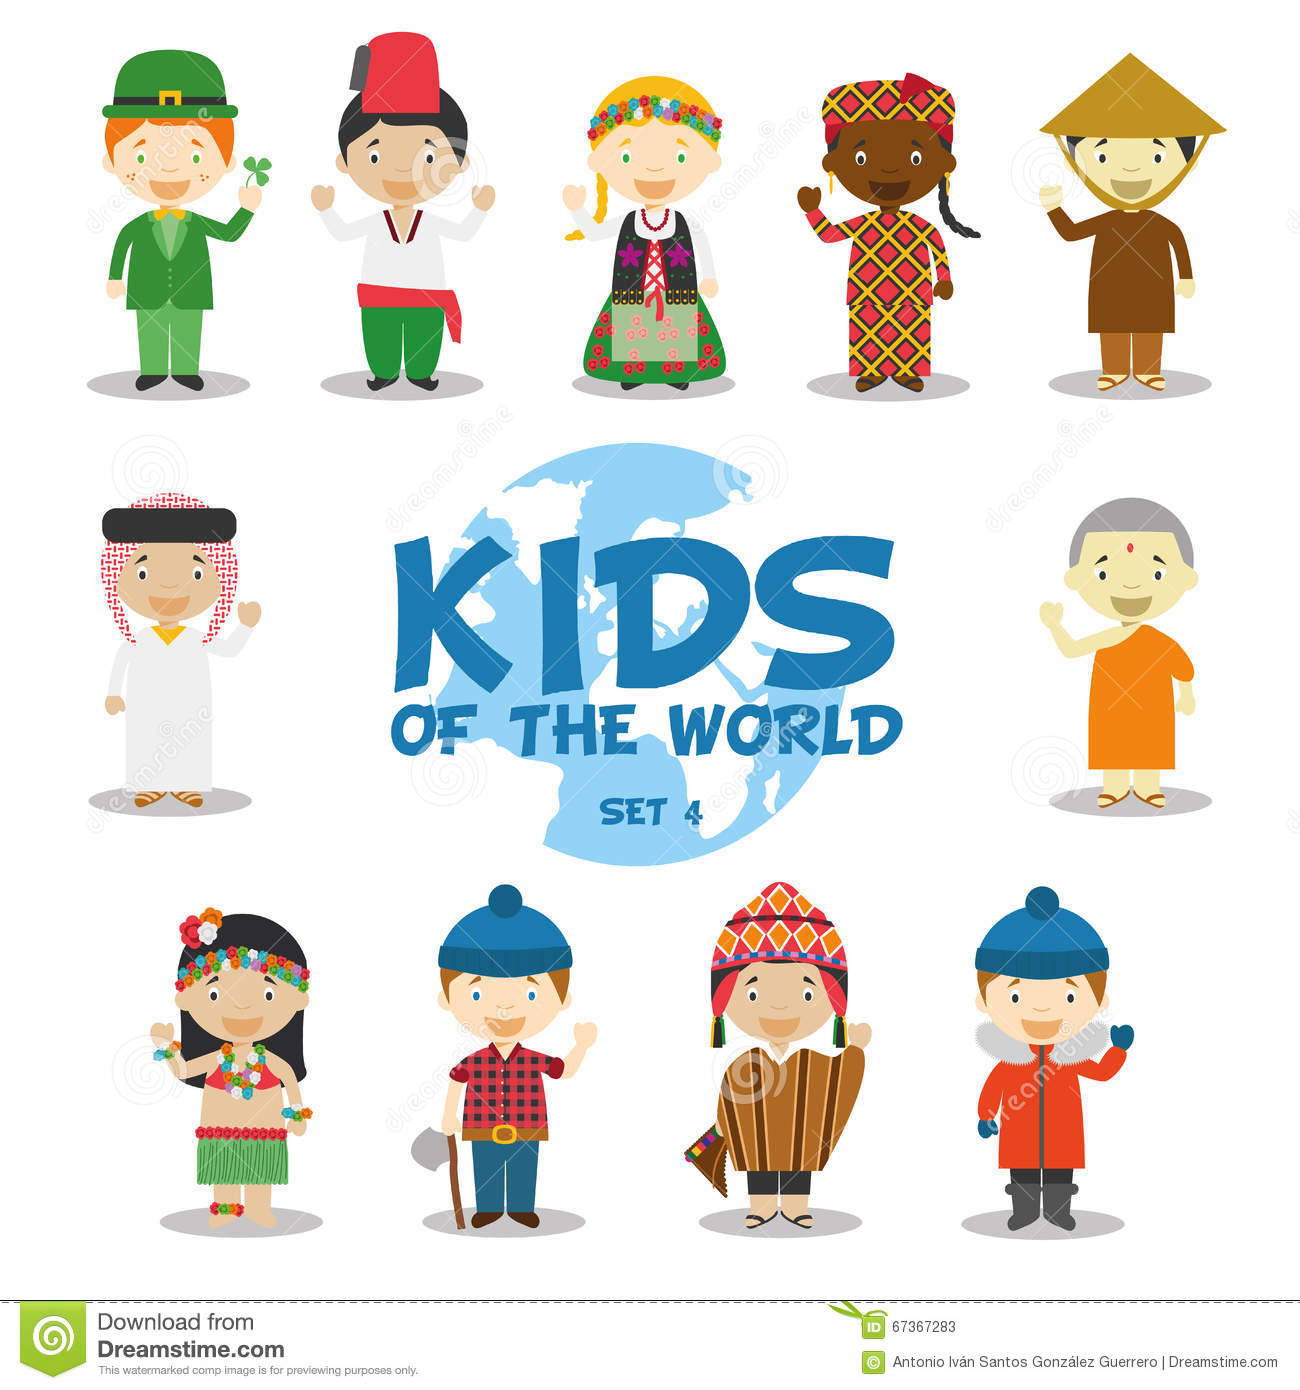 Kids of the world illustration: Nationalities Set 4. Set of 11 characters dressed in different national costumes